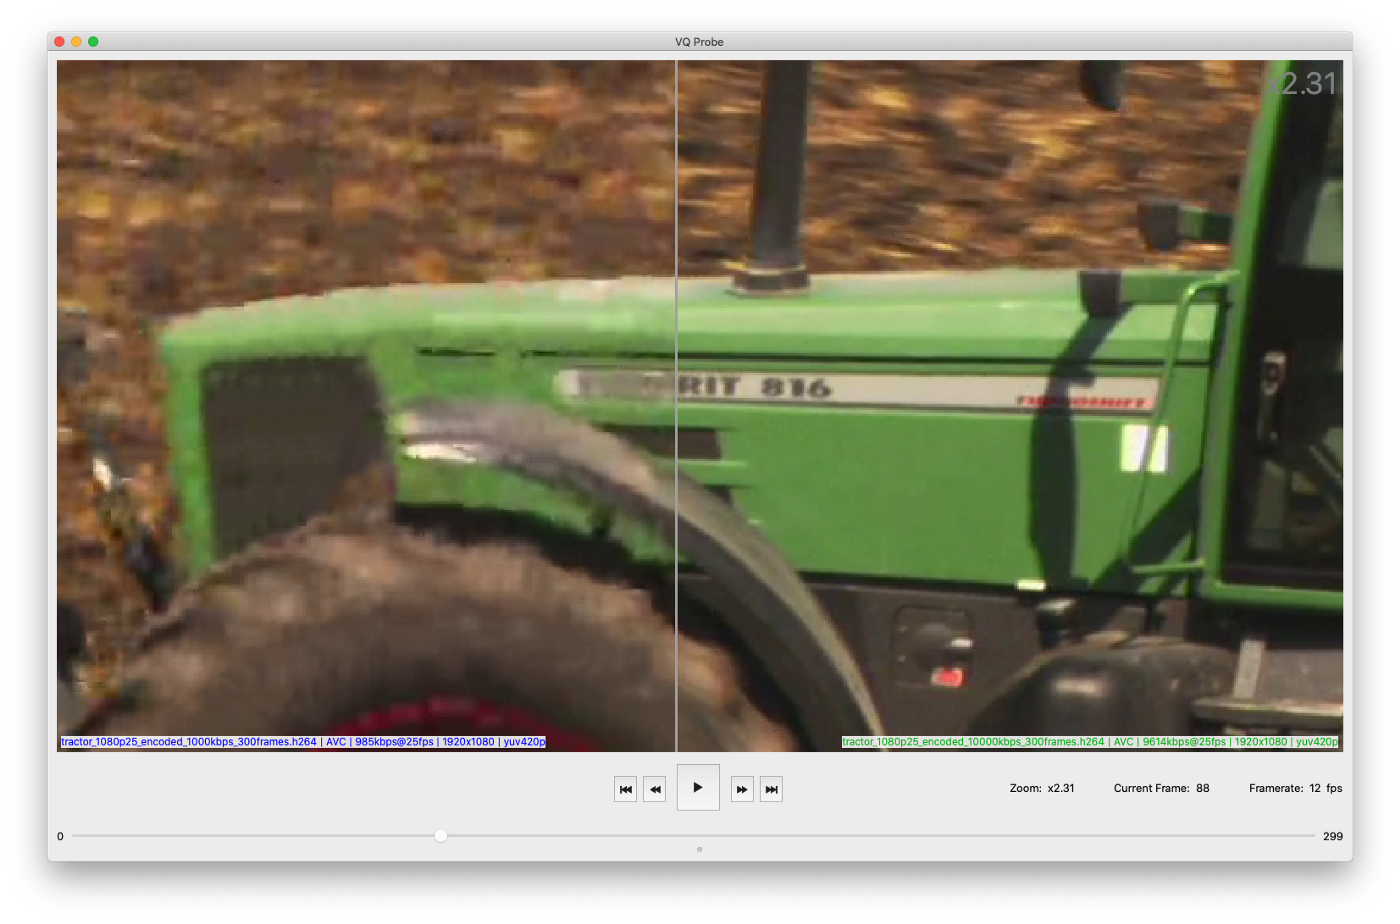 Zoomed in green tractor cabin